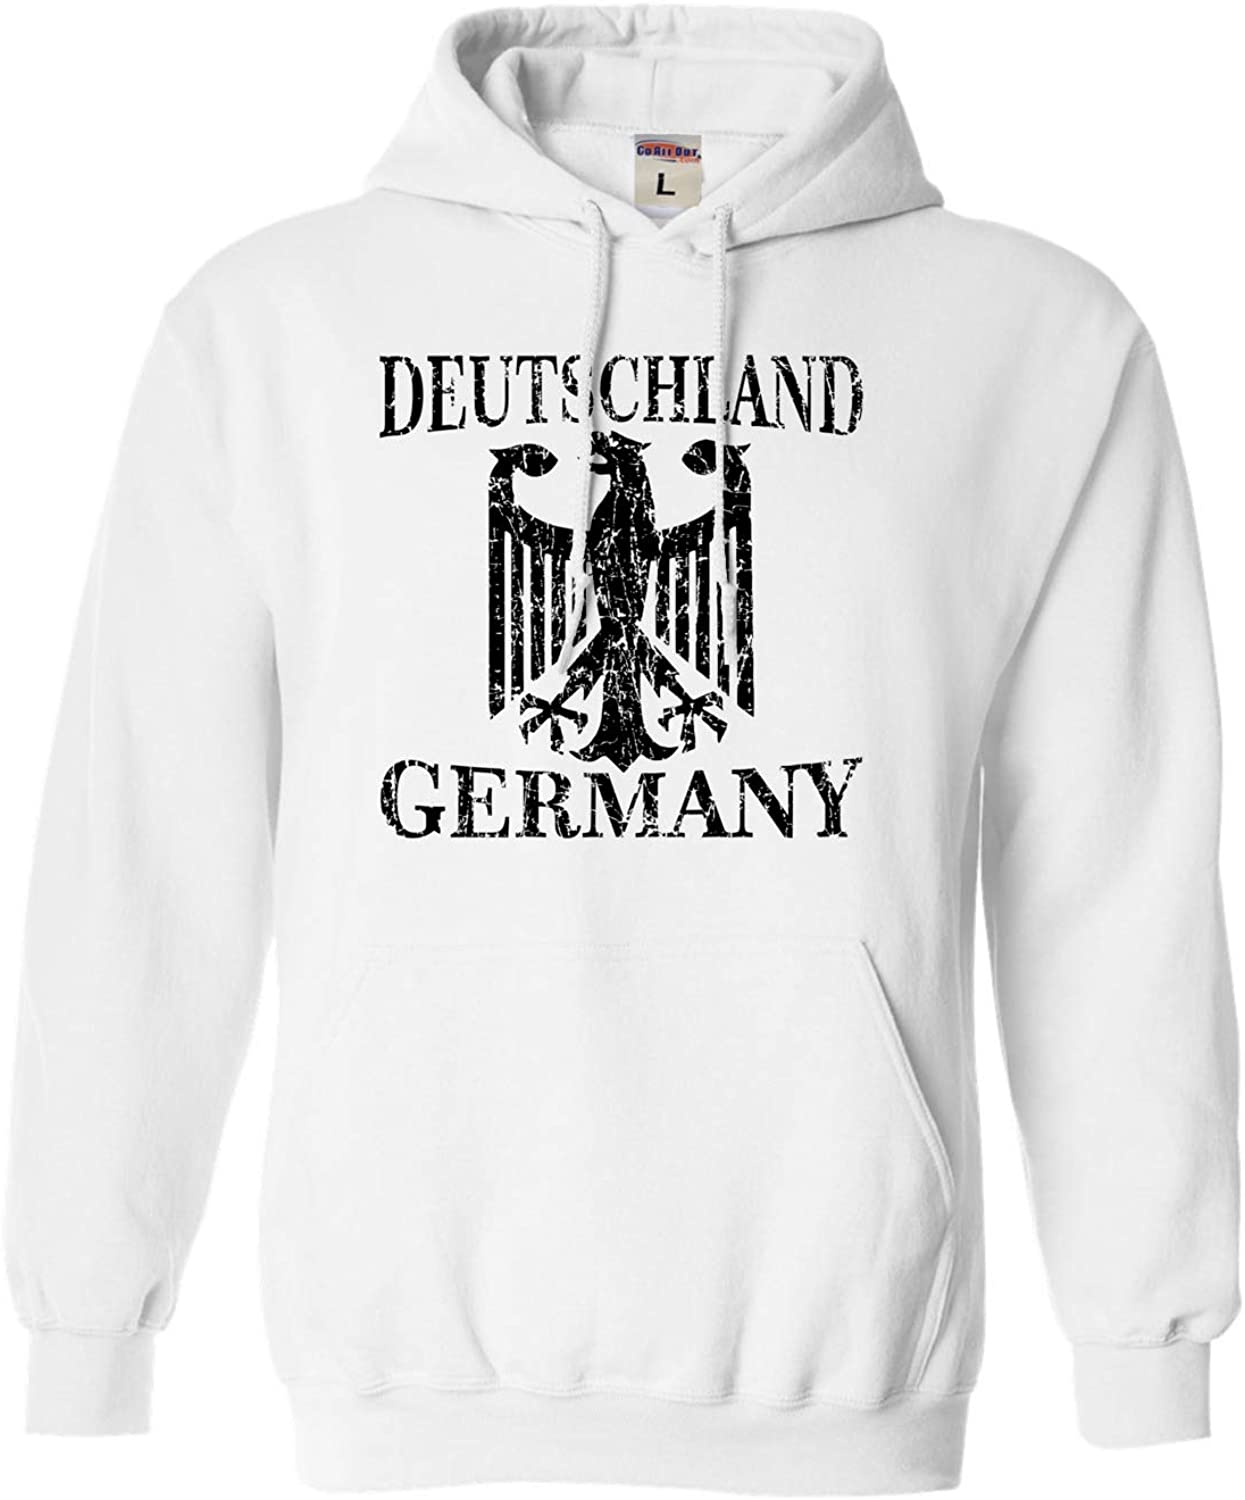 Go All Out Adult and Youth Germany Deutschland Distressed Crest Sweatshirt Hoodie